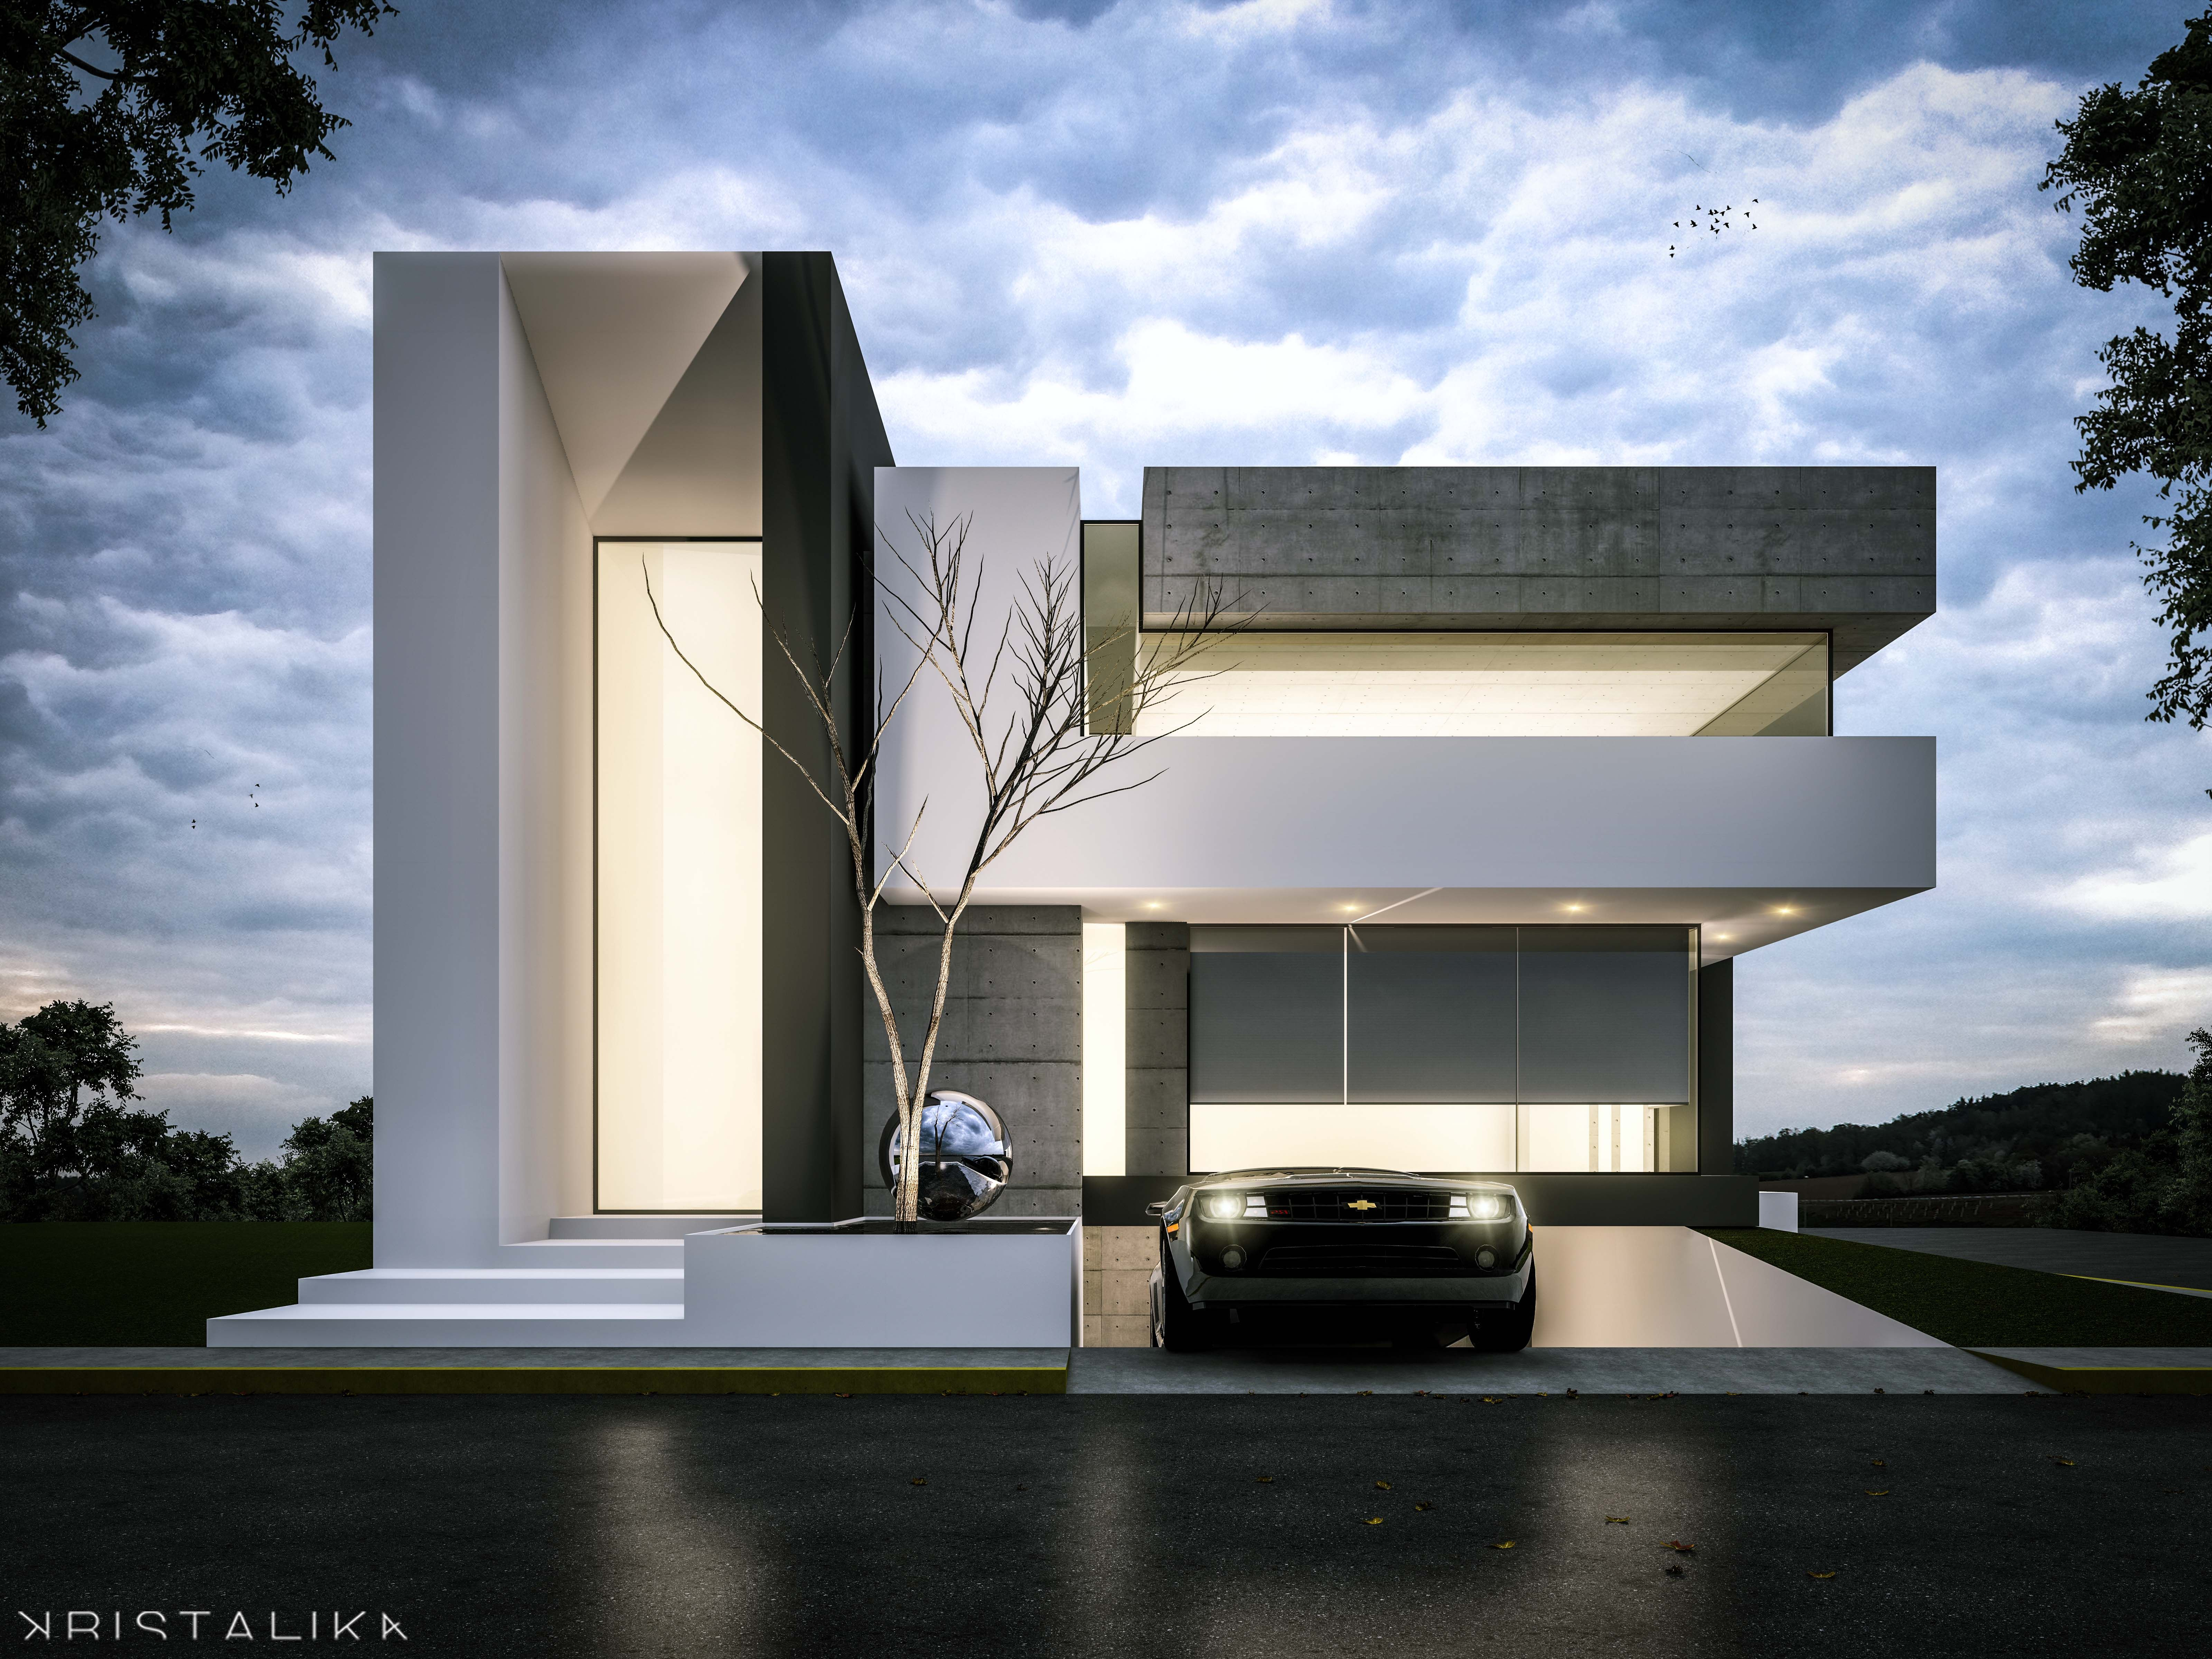 Modern architecture house luxury facades ultra homes also pin by arash   on design inspiration pinterest rh